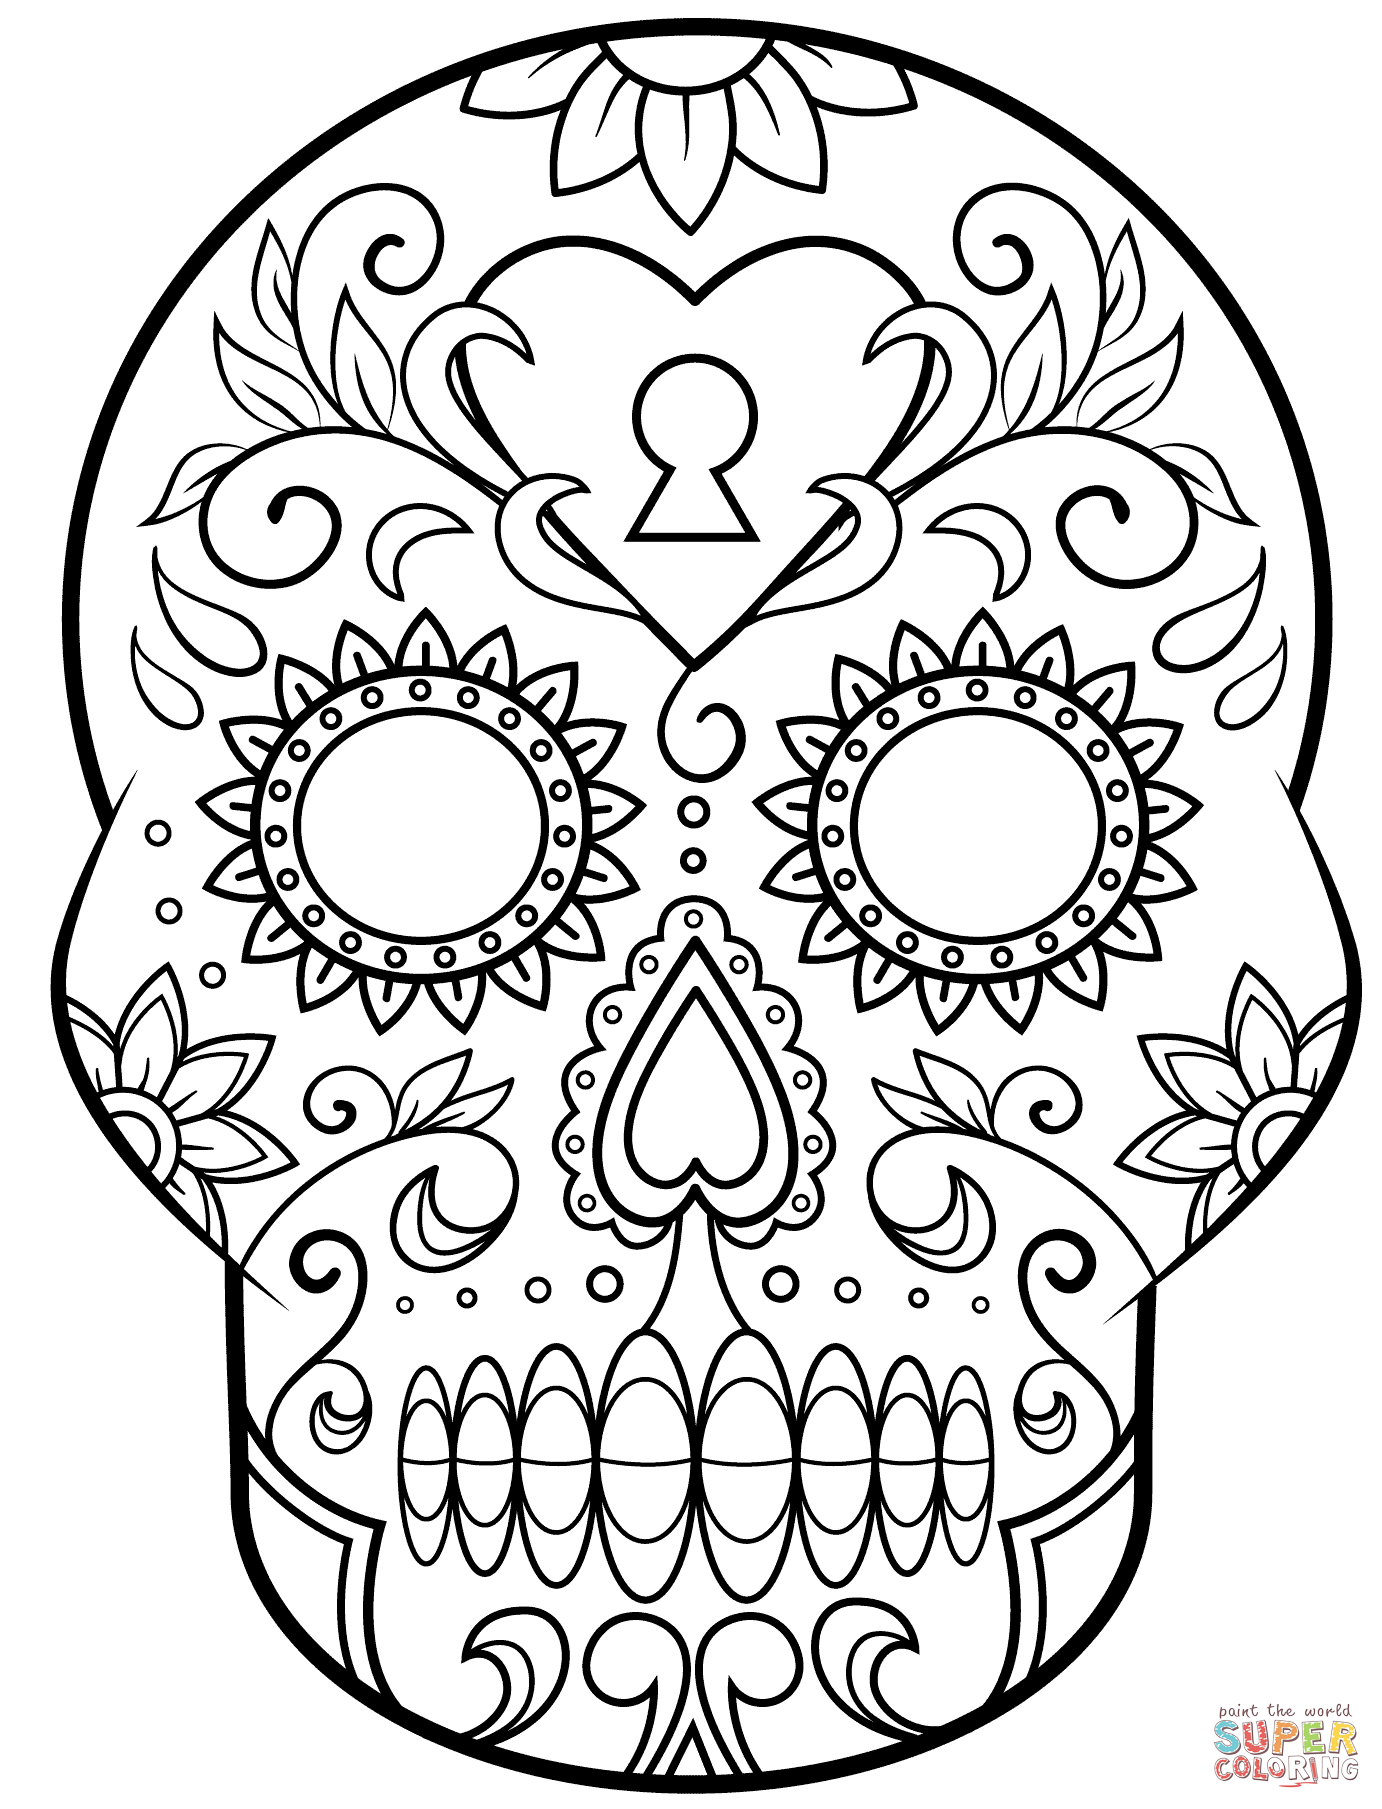 Skull coloring page